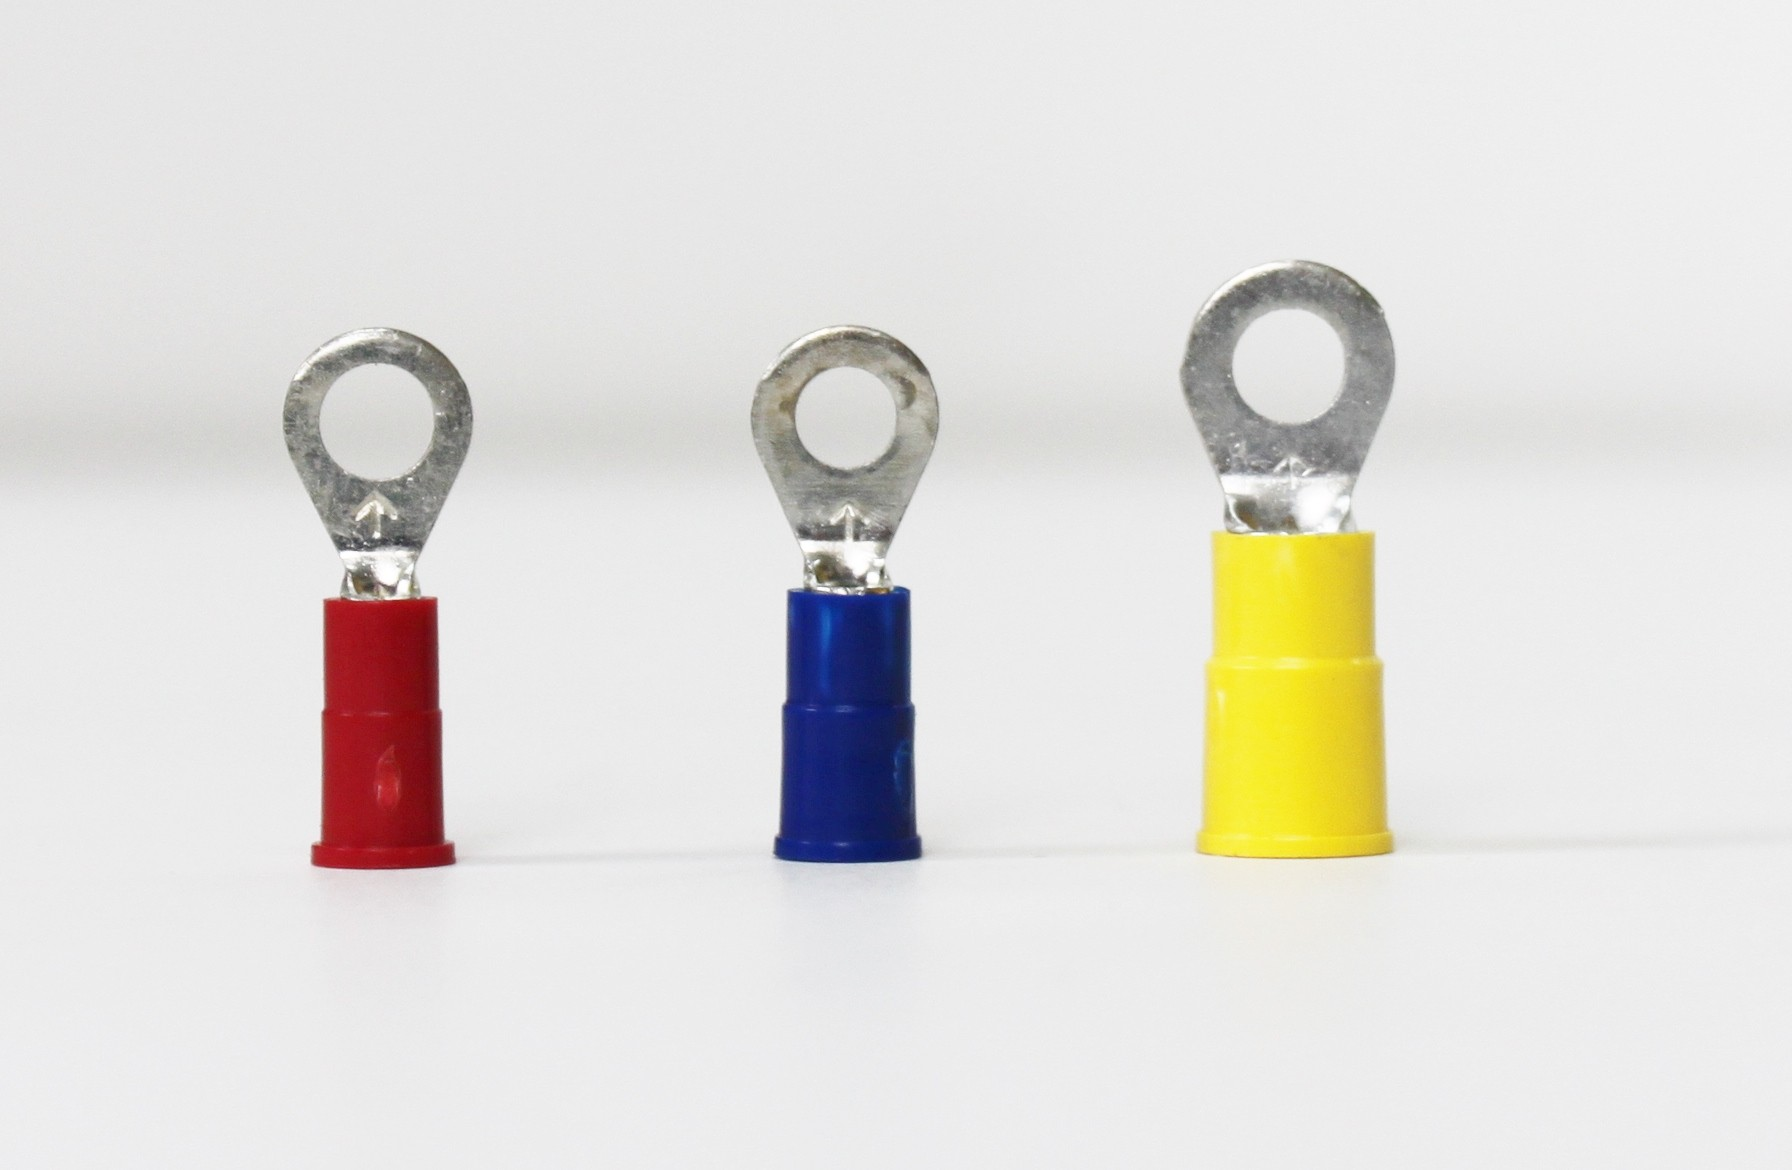 Vinyl Insulated Butted Seam Ring Terminals (4)